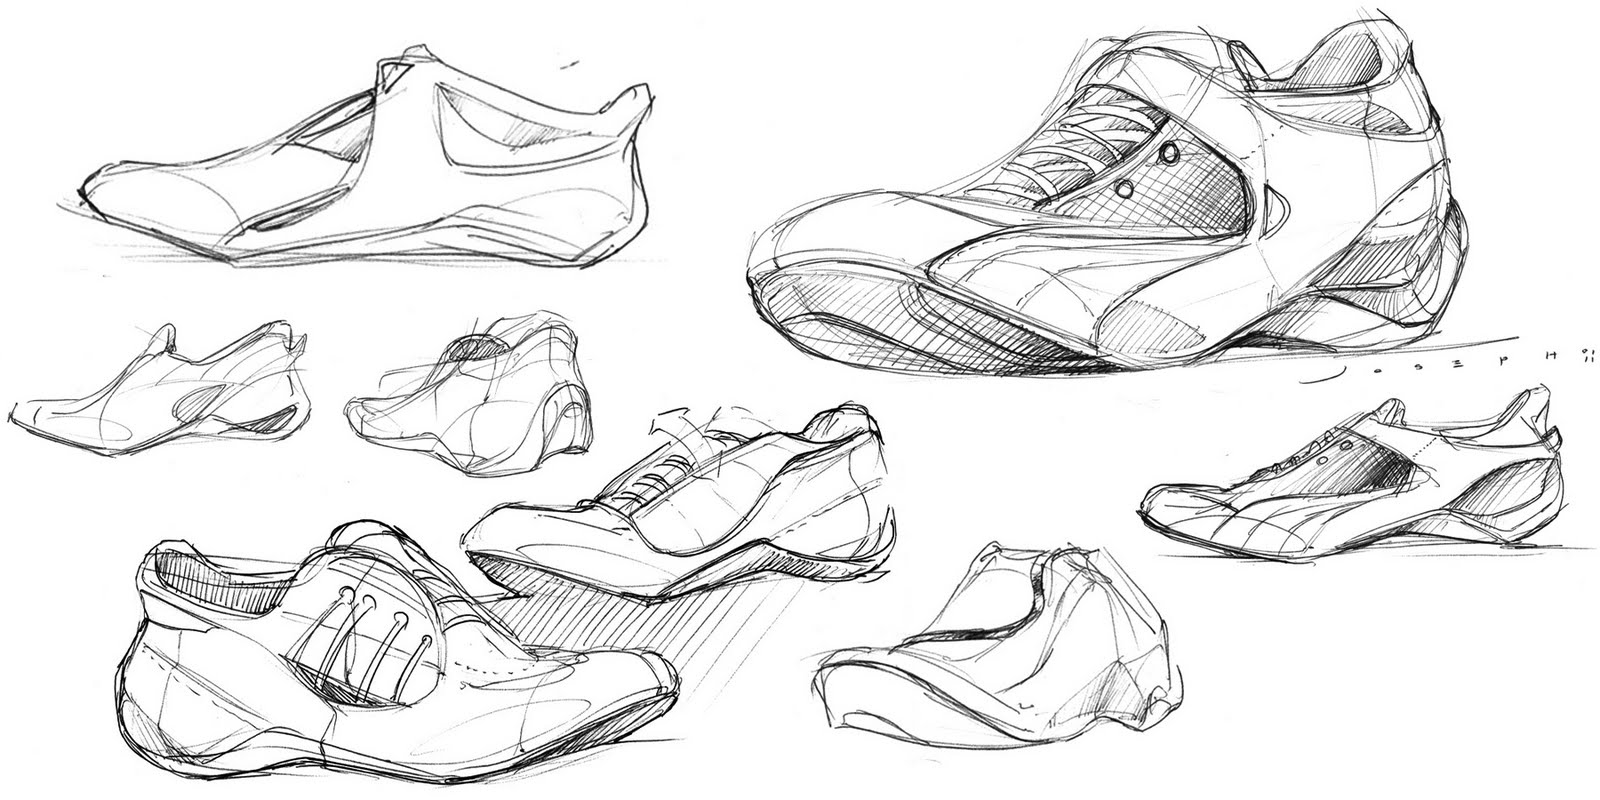 drawing of shoes image clipart panda free clipart images of shoes drawing image